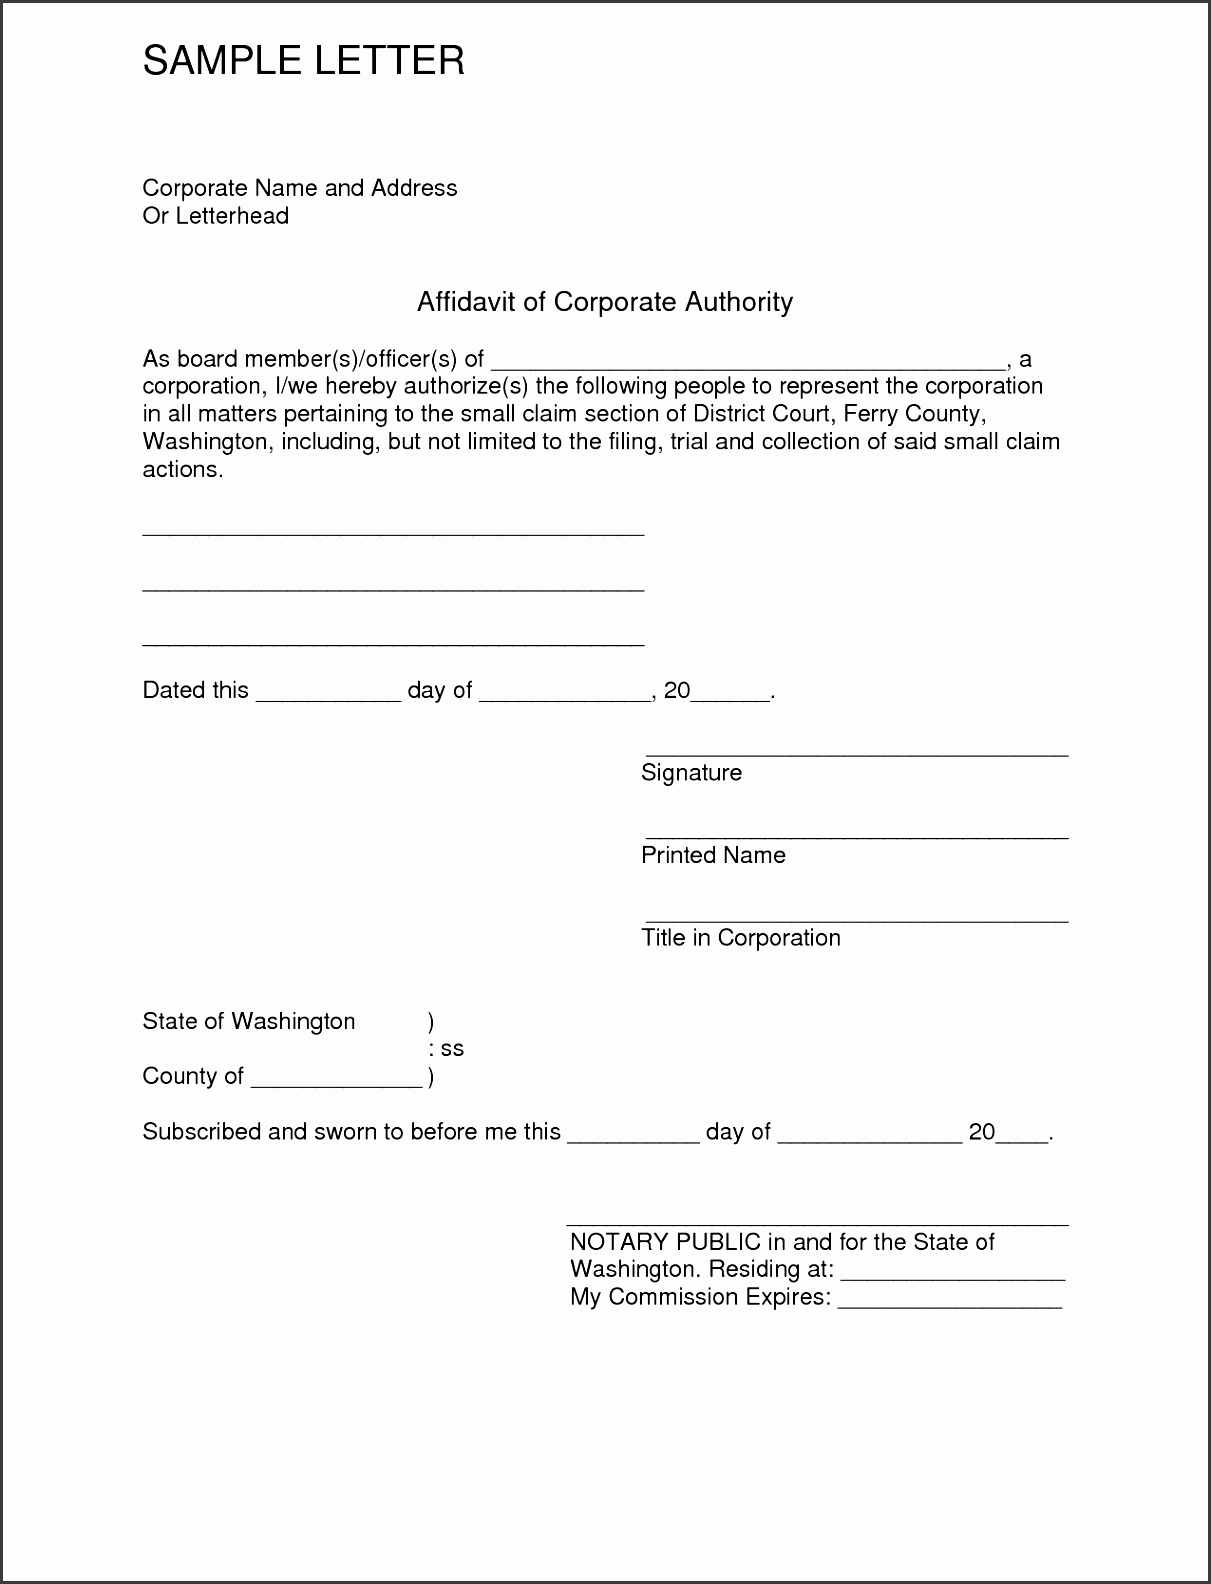 Sample Affidavit Letter  Affidavit Template Word